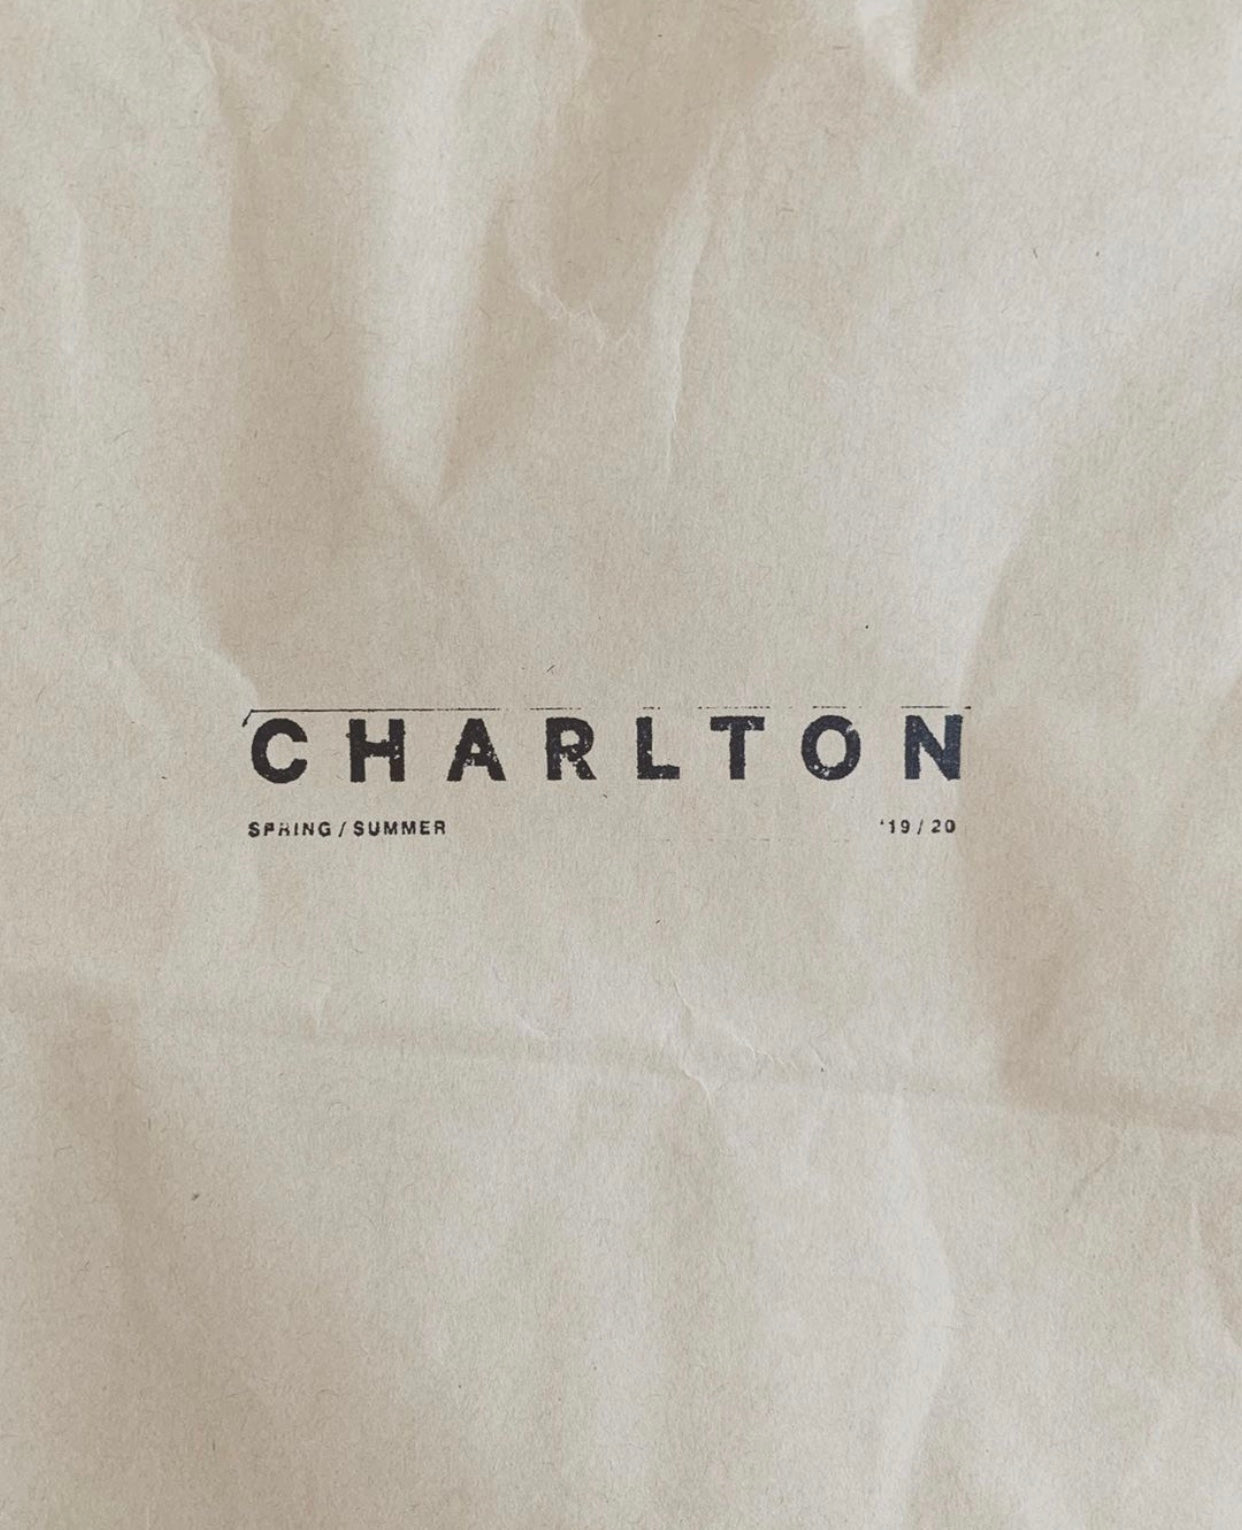 Charlton Packaging, Brown Paper / Black ink stamp.